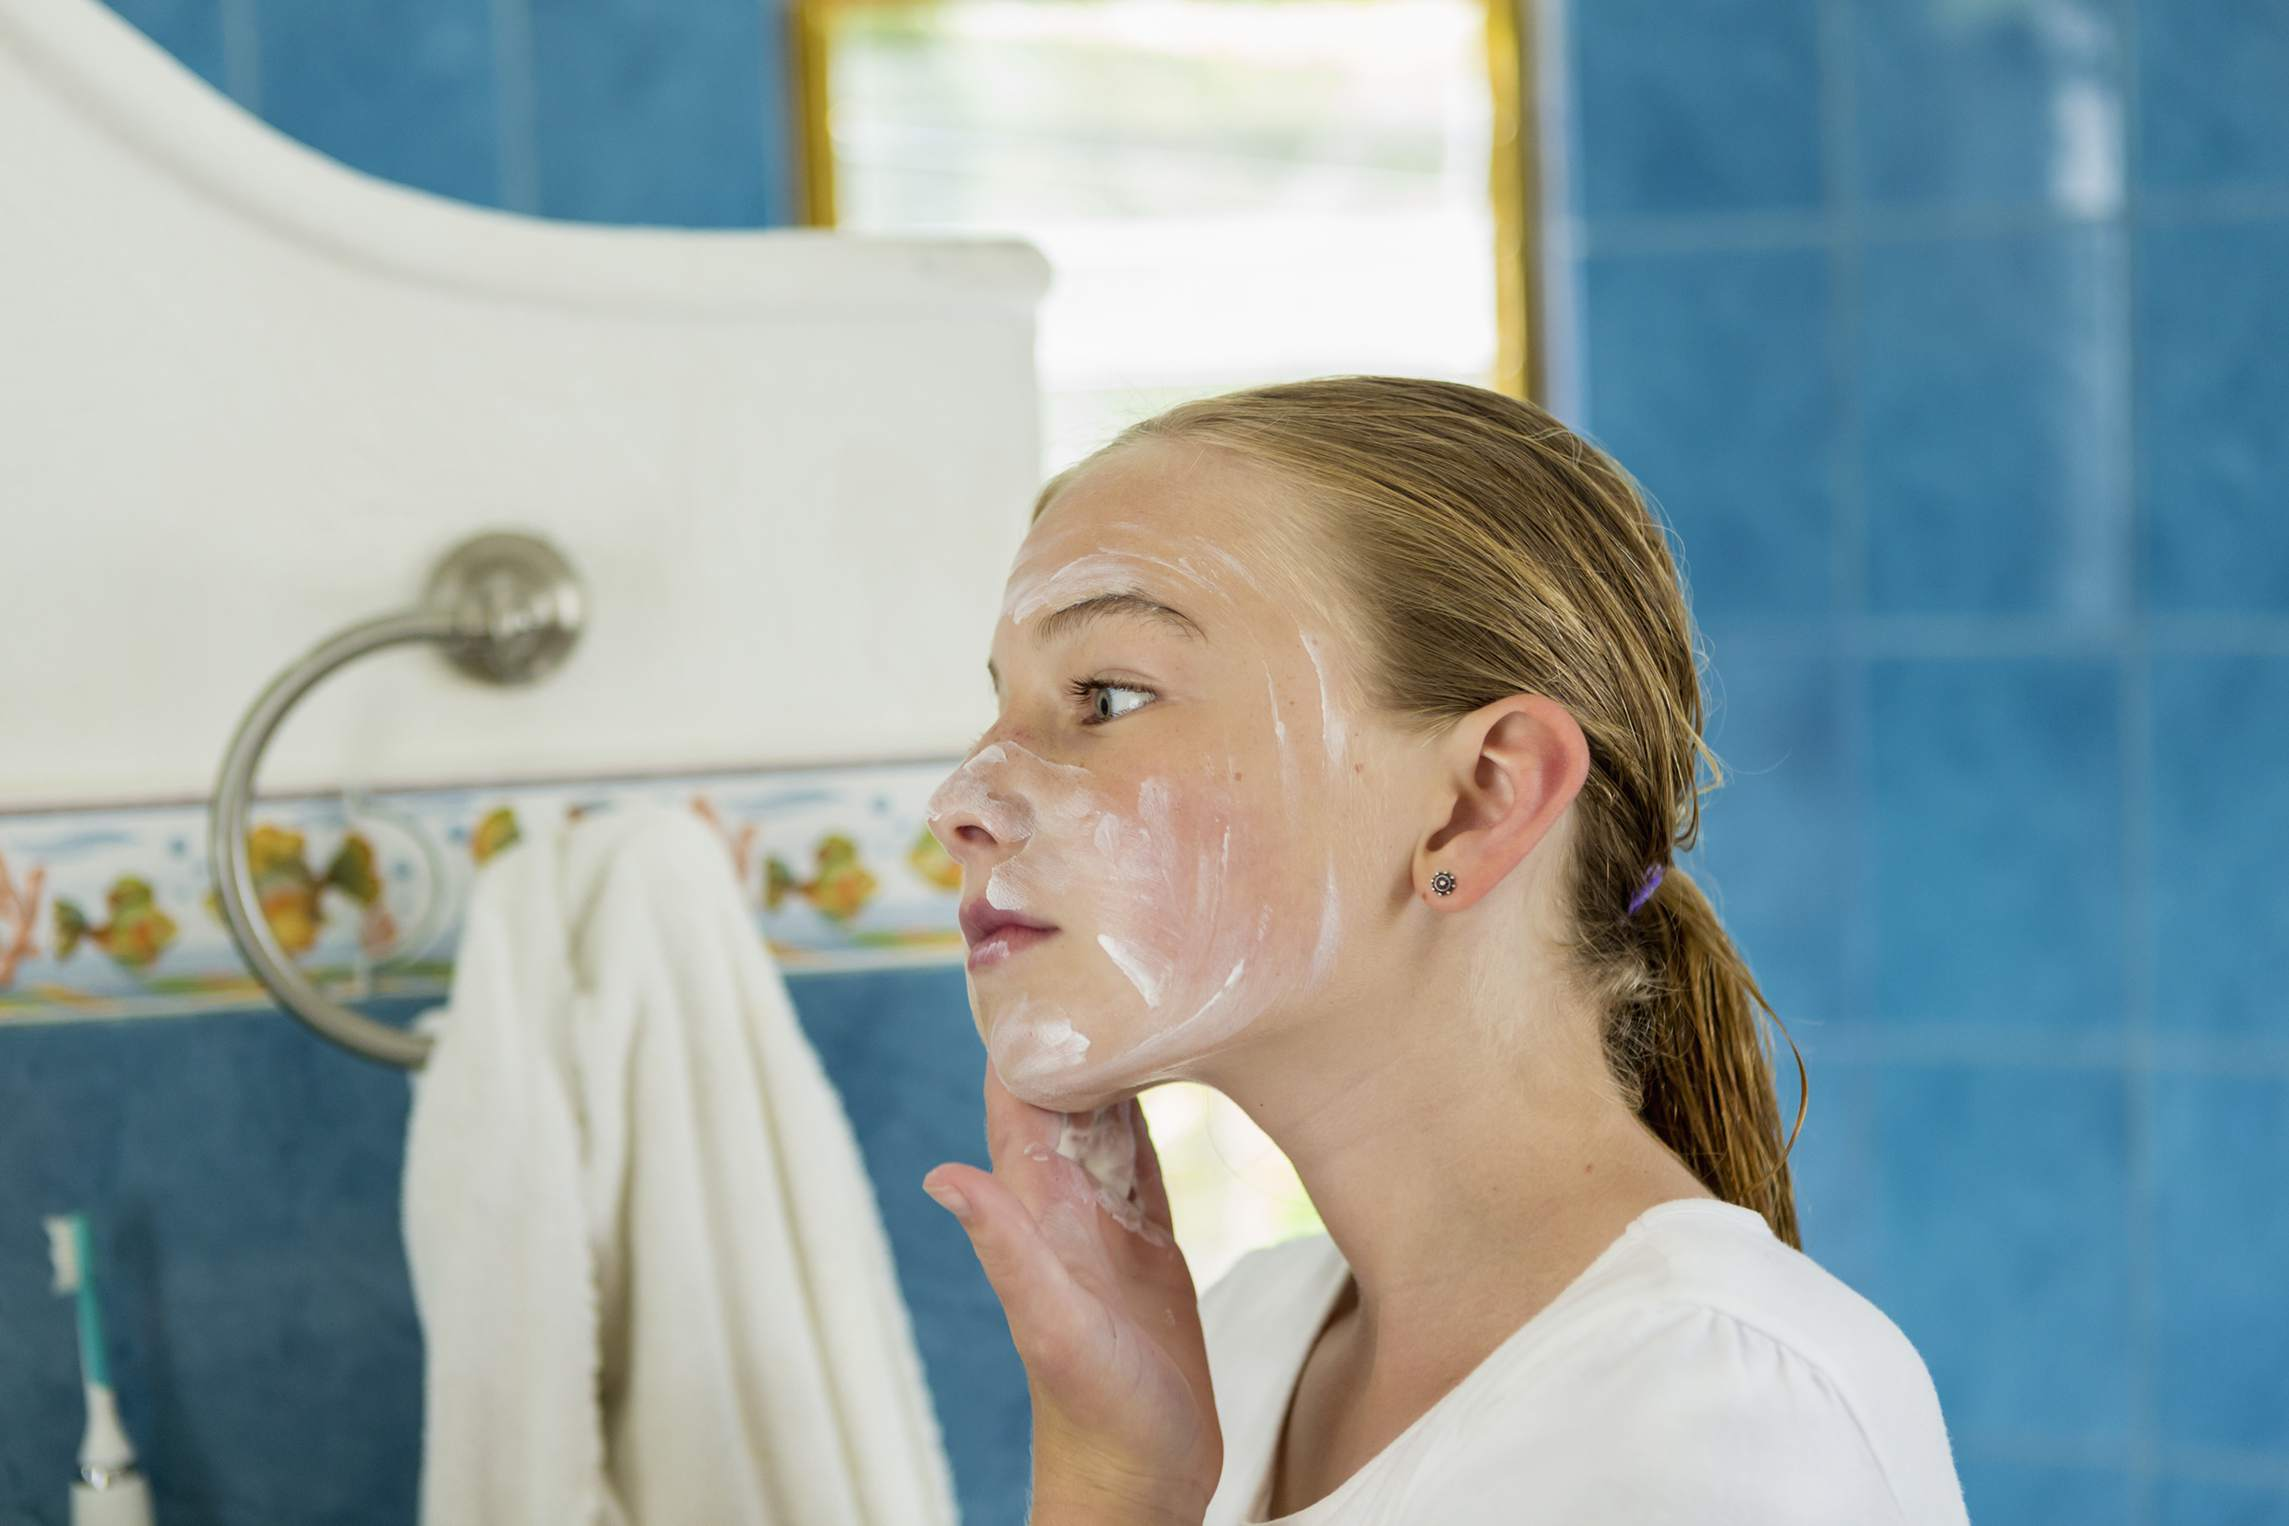 girl washing face with soap